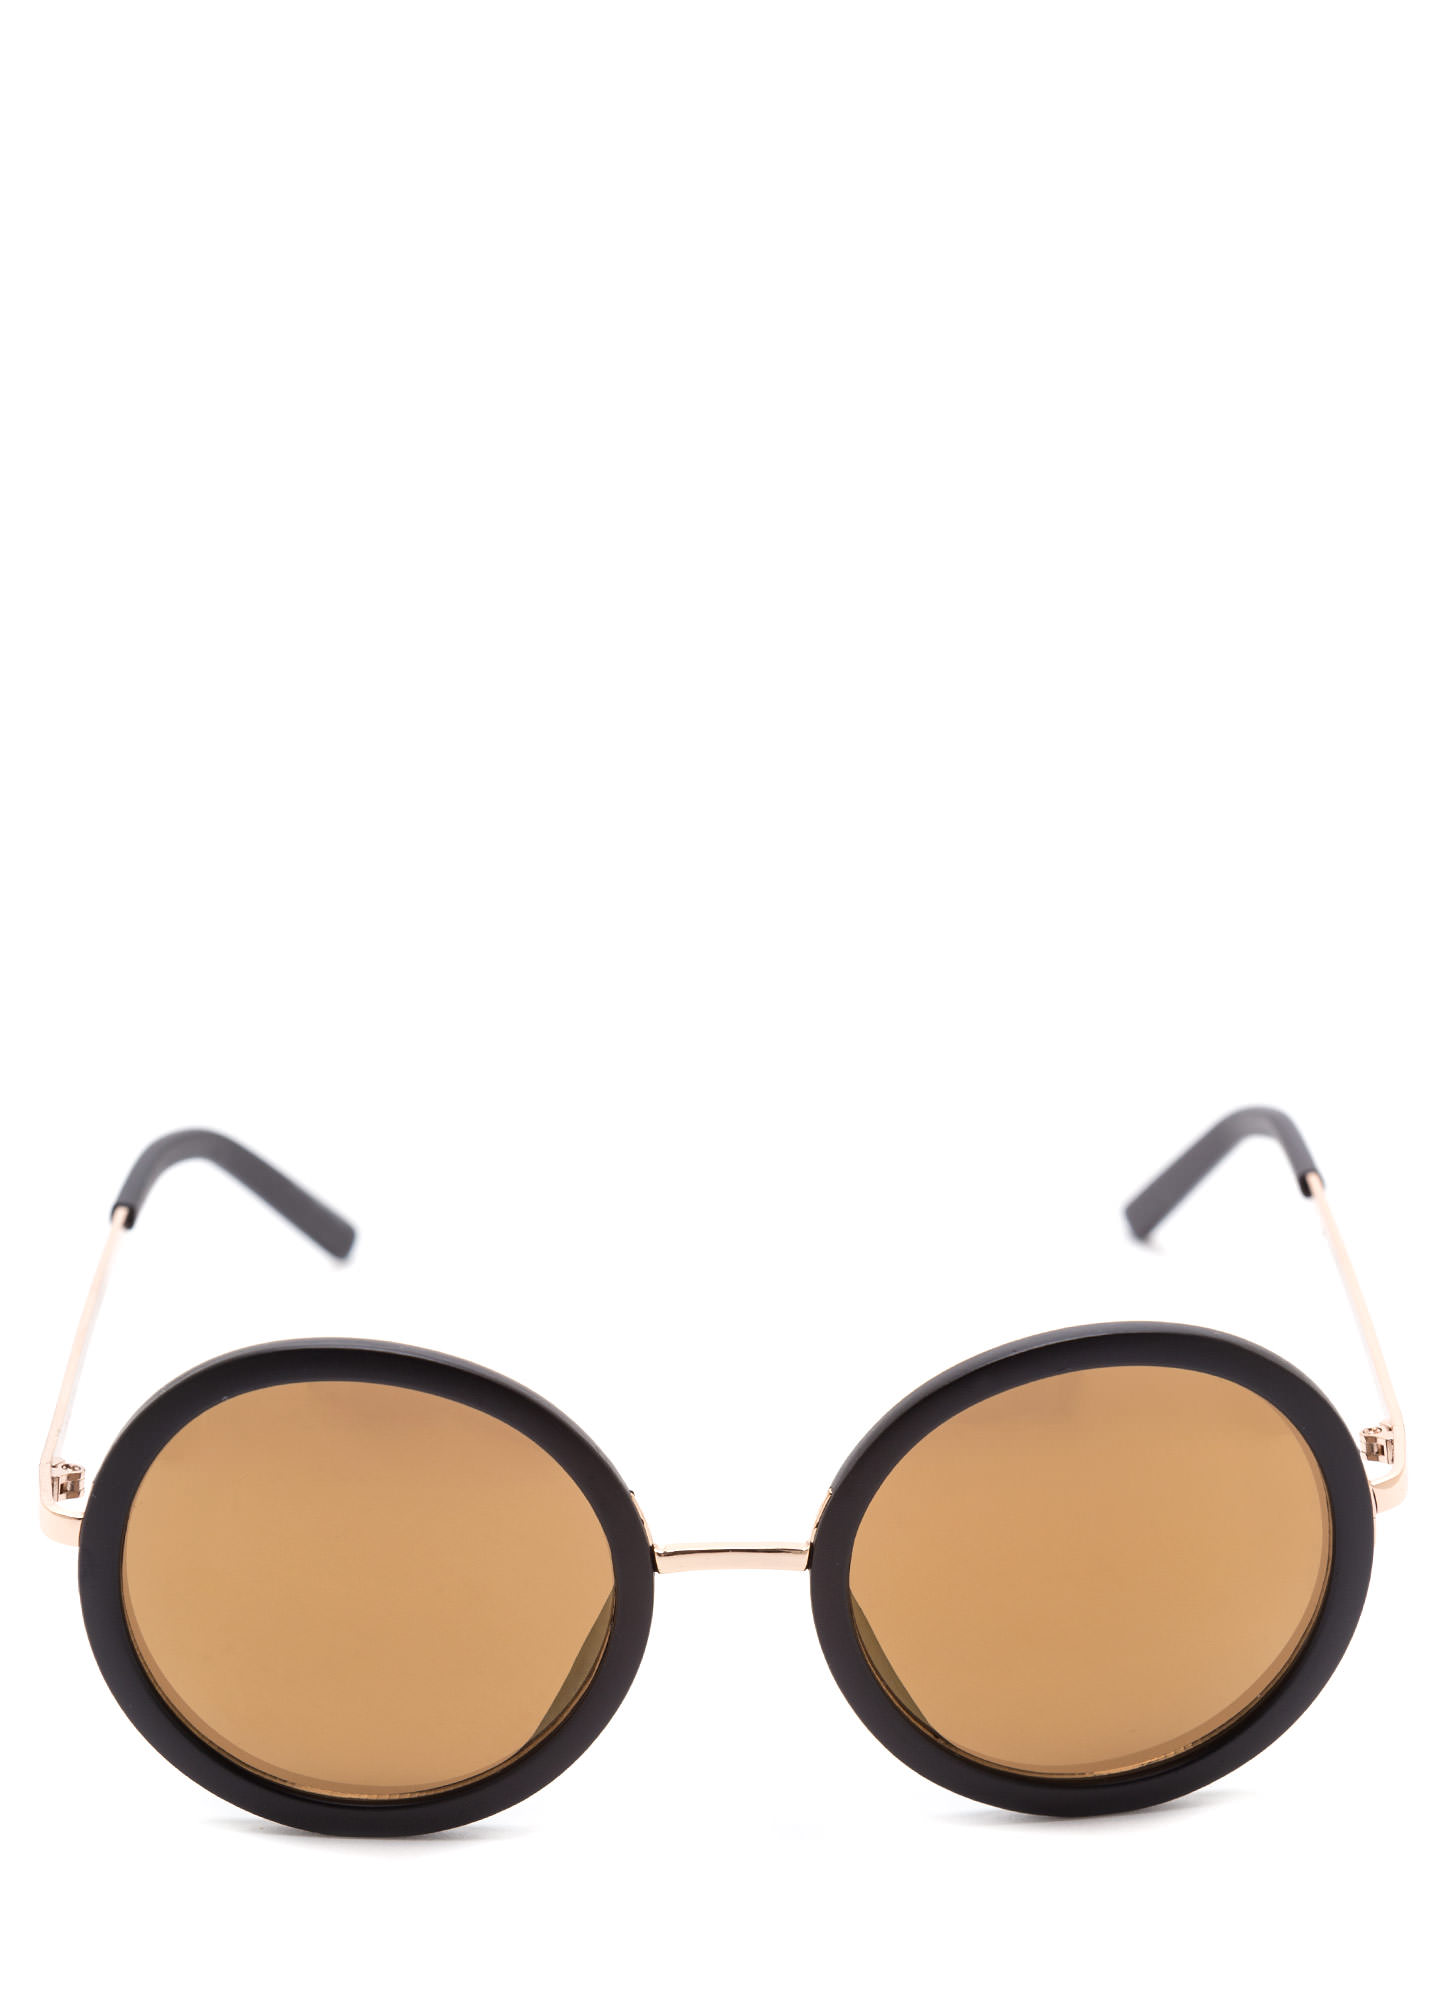 Round Of Applause Sunglasses BLACKBROWN